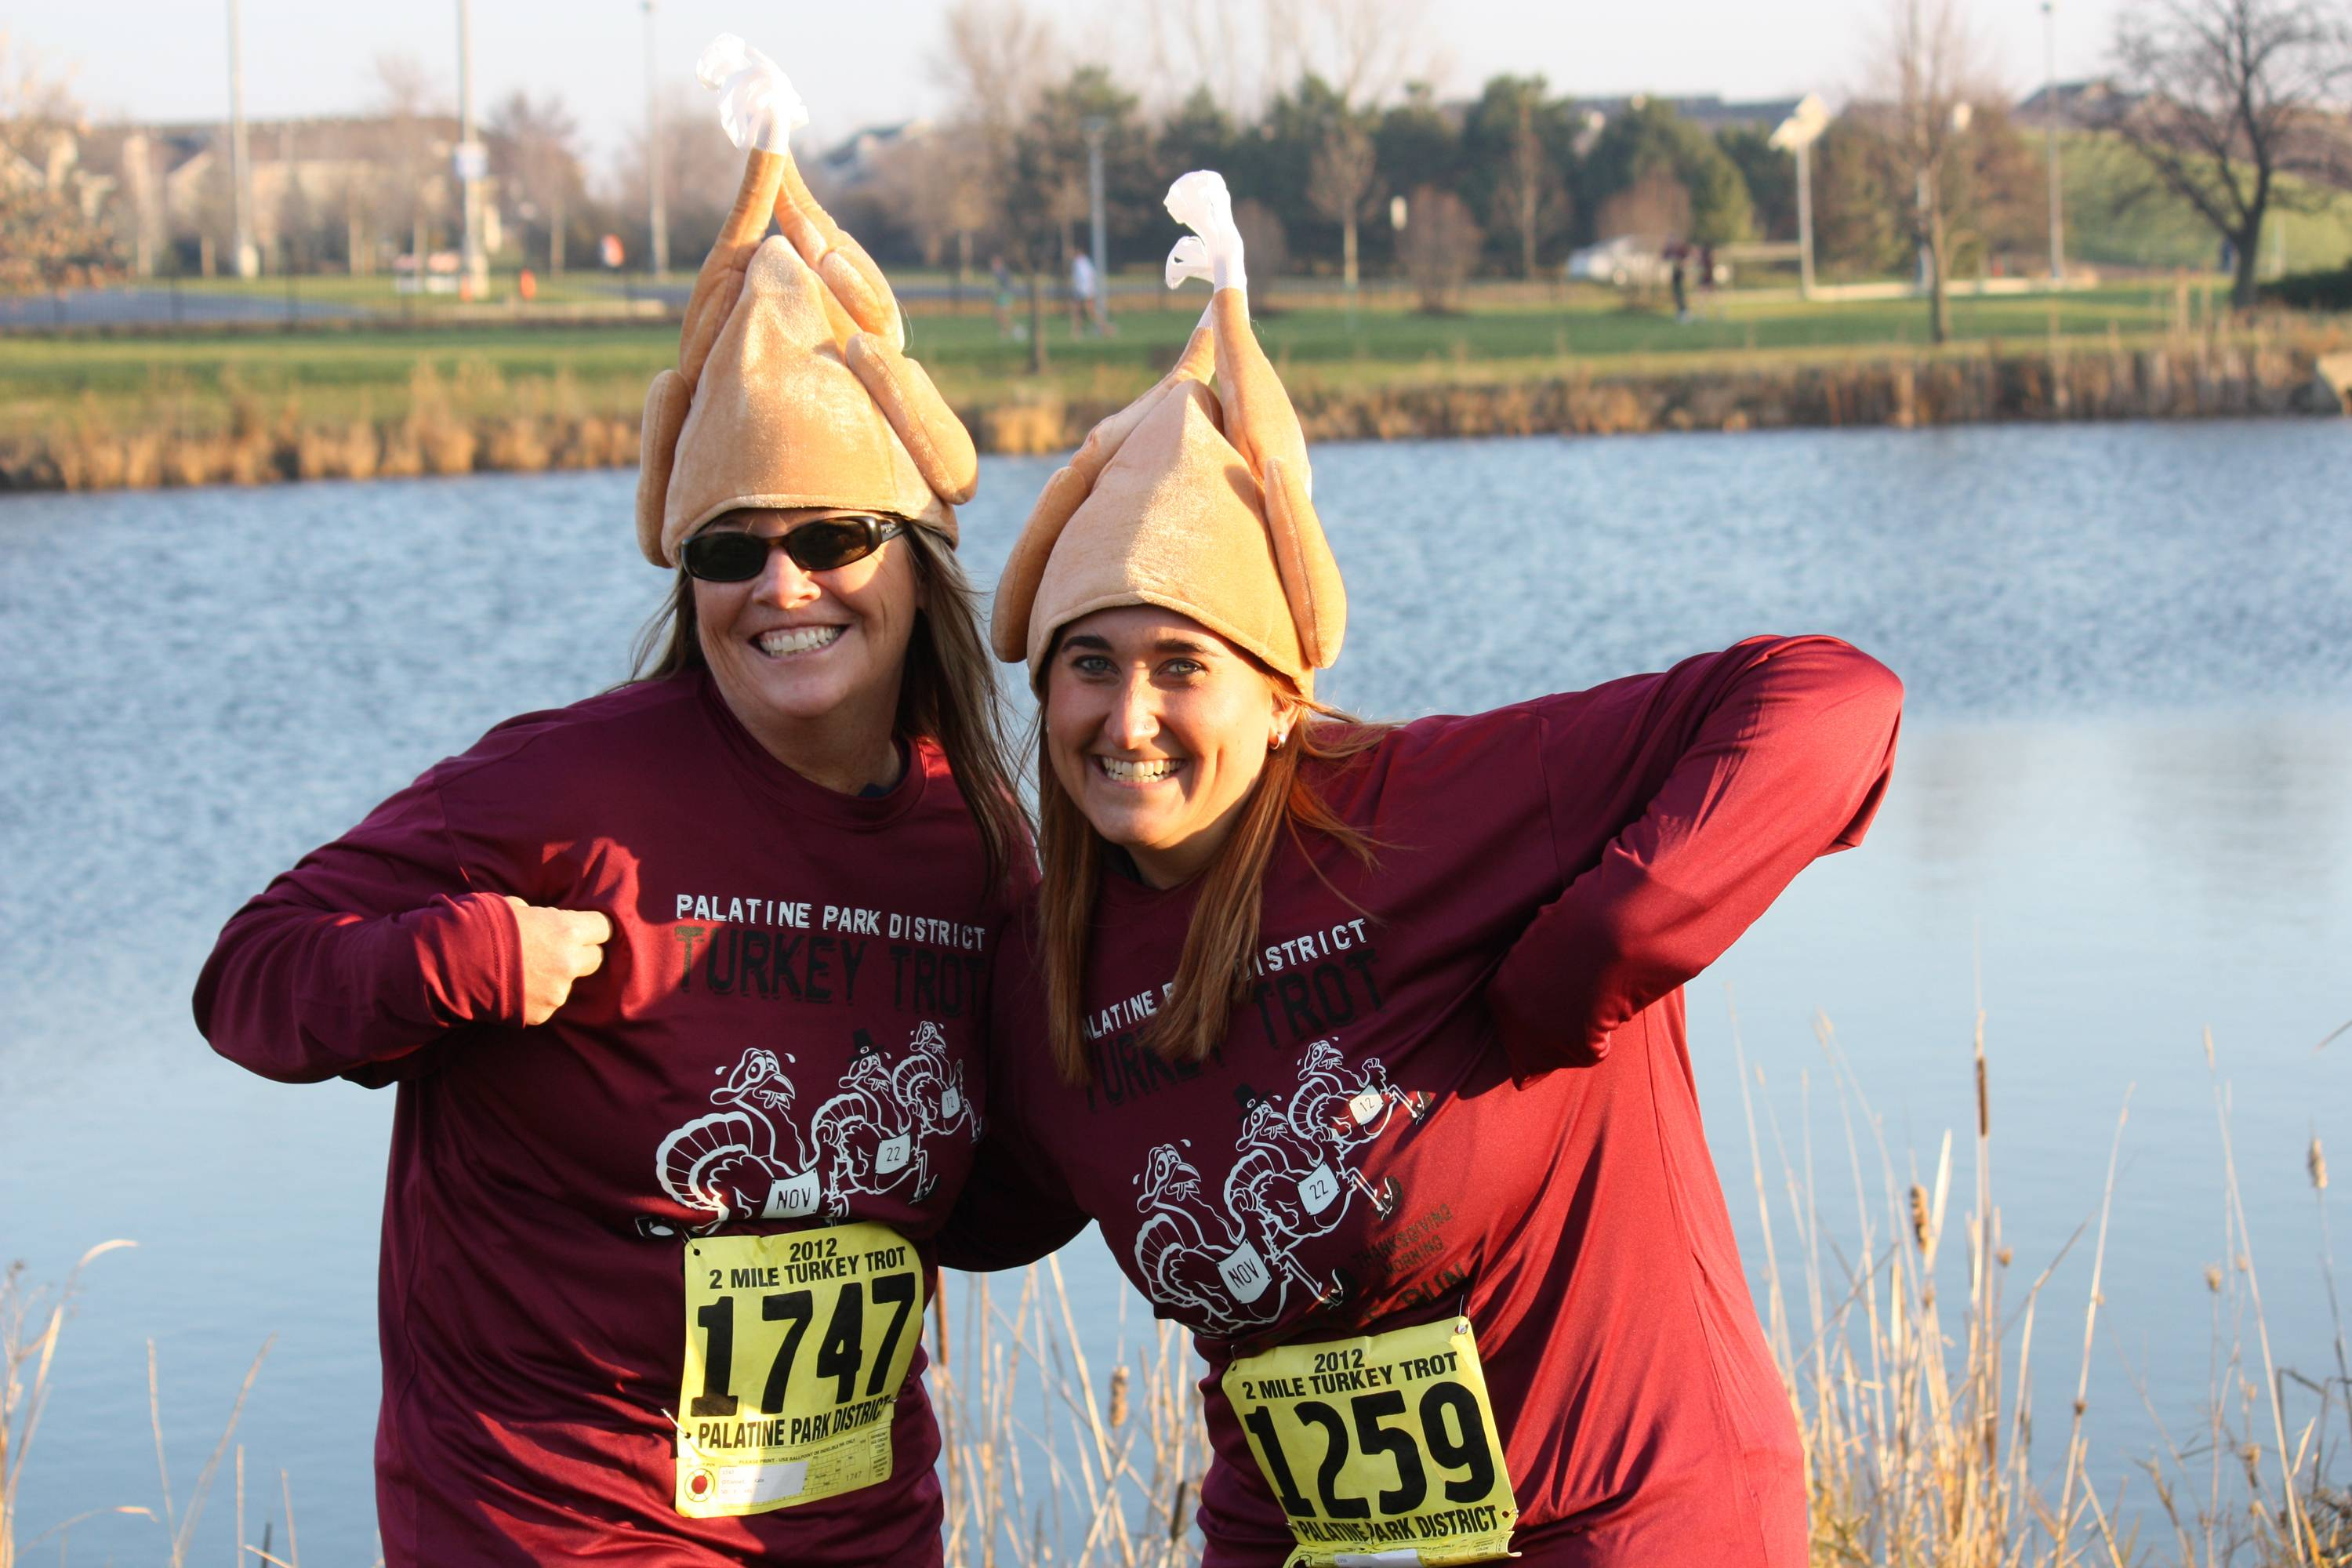 Annual 2 Mile, 5 Mile and Drumstick Dash events will be offered on November 28 at Harper College.